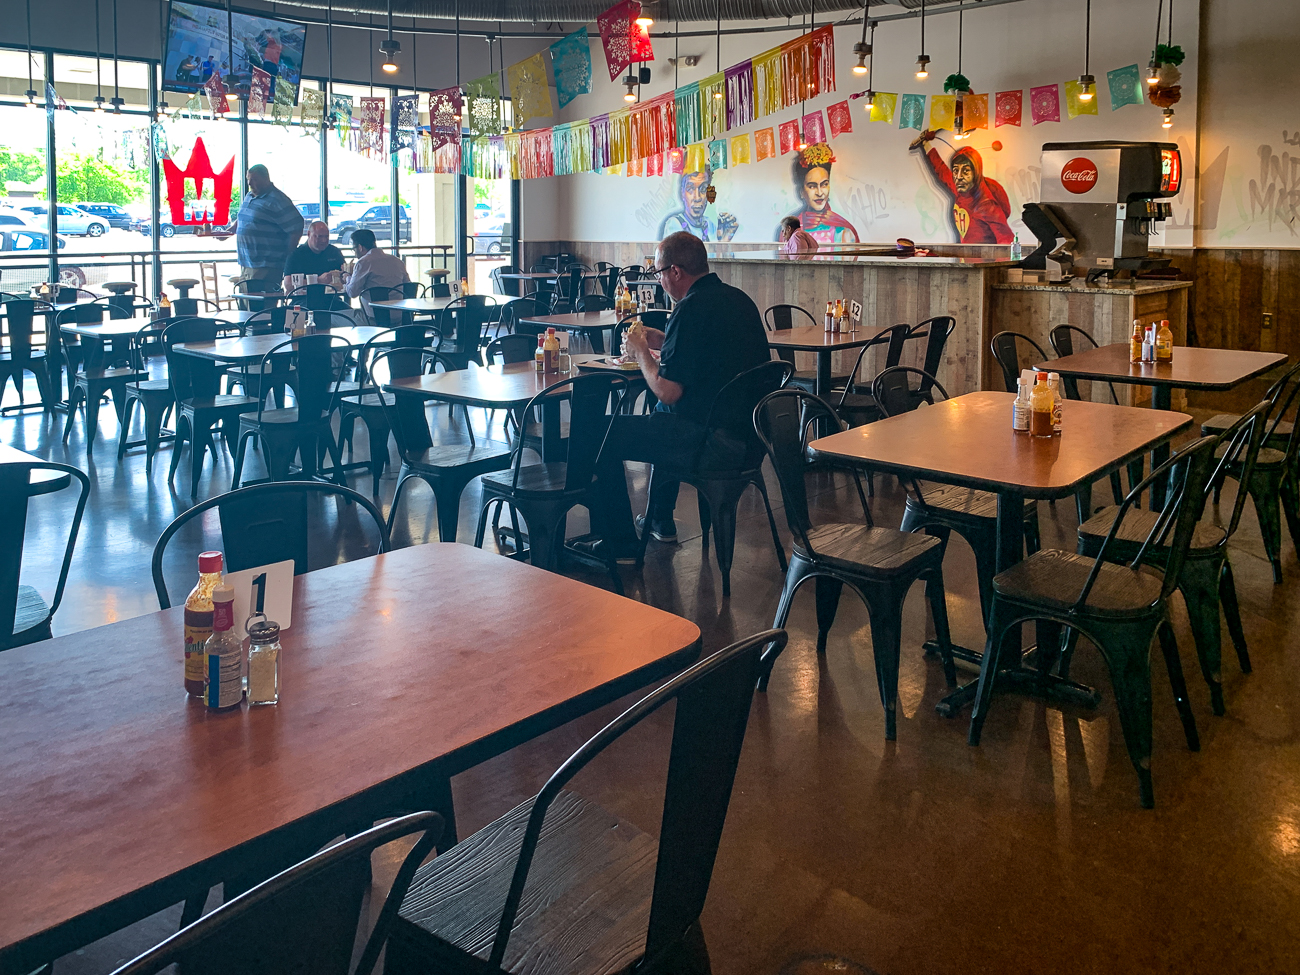 PLACE: Taqueria El Monarca / ADDRESS: 11449 Princeton Pike (Springdale) / DESCRIPTION: This is the most seemingly commercial spot on the list. It's mere blocks away from Tri-County Mall, and it's set up like Chipotle, with the fast-casual vibe and the counter service. Don't let all that fool you though; these tacos are as authentic as any other place on this list. I got the carnitas tacos and the beef tacos. If you're up in the northern part of Greater Cincinnati, and you need your fix, this is the place to go. / Image: Shawn Braley // Published: 5.28.19